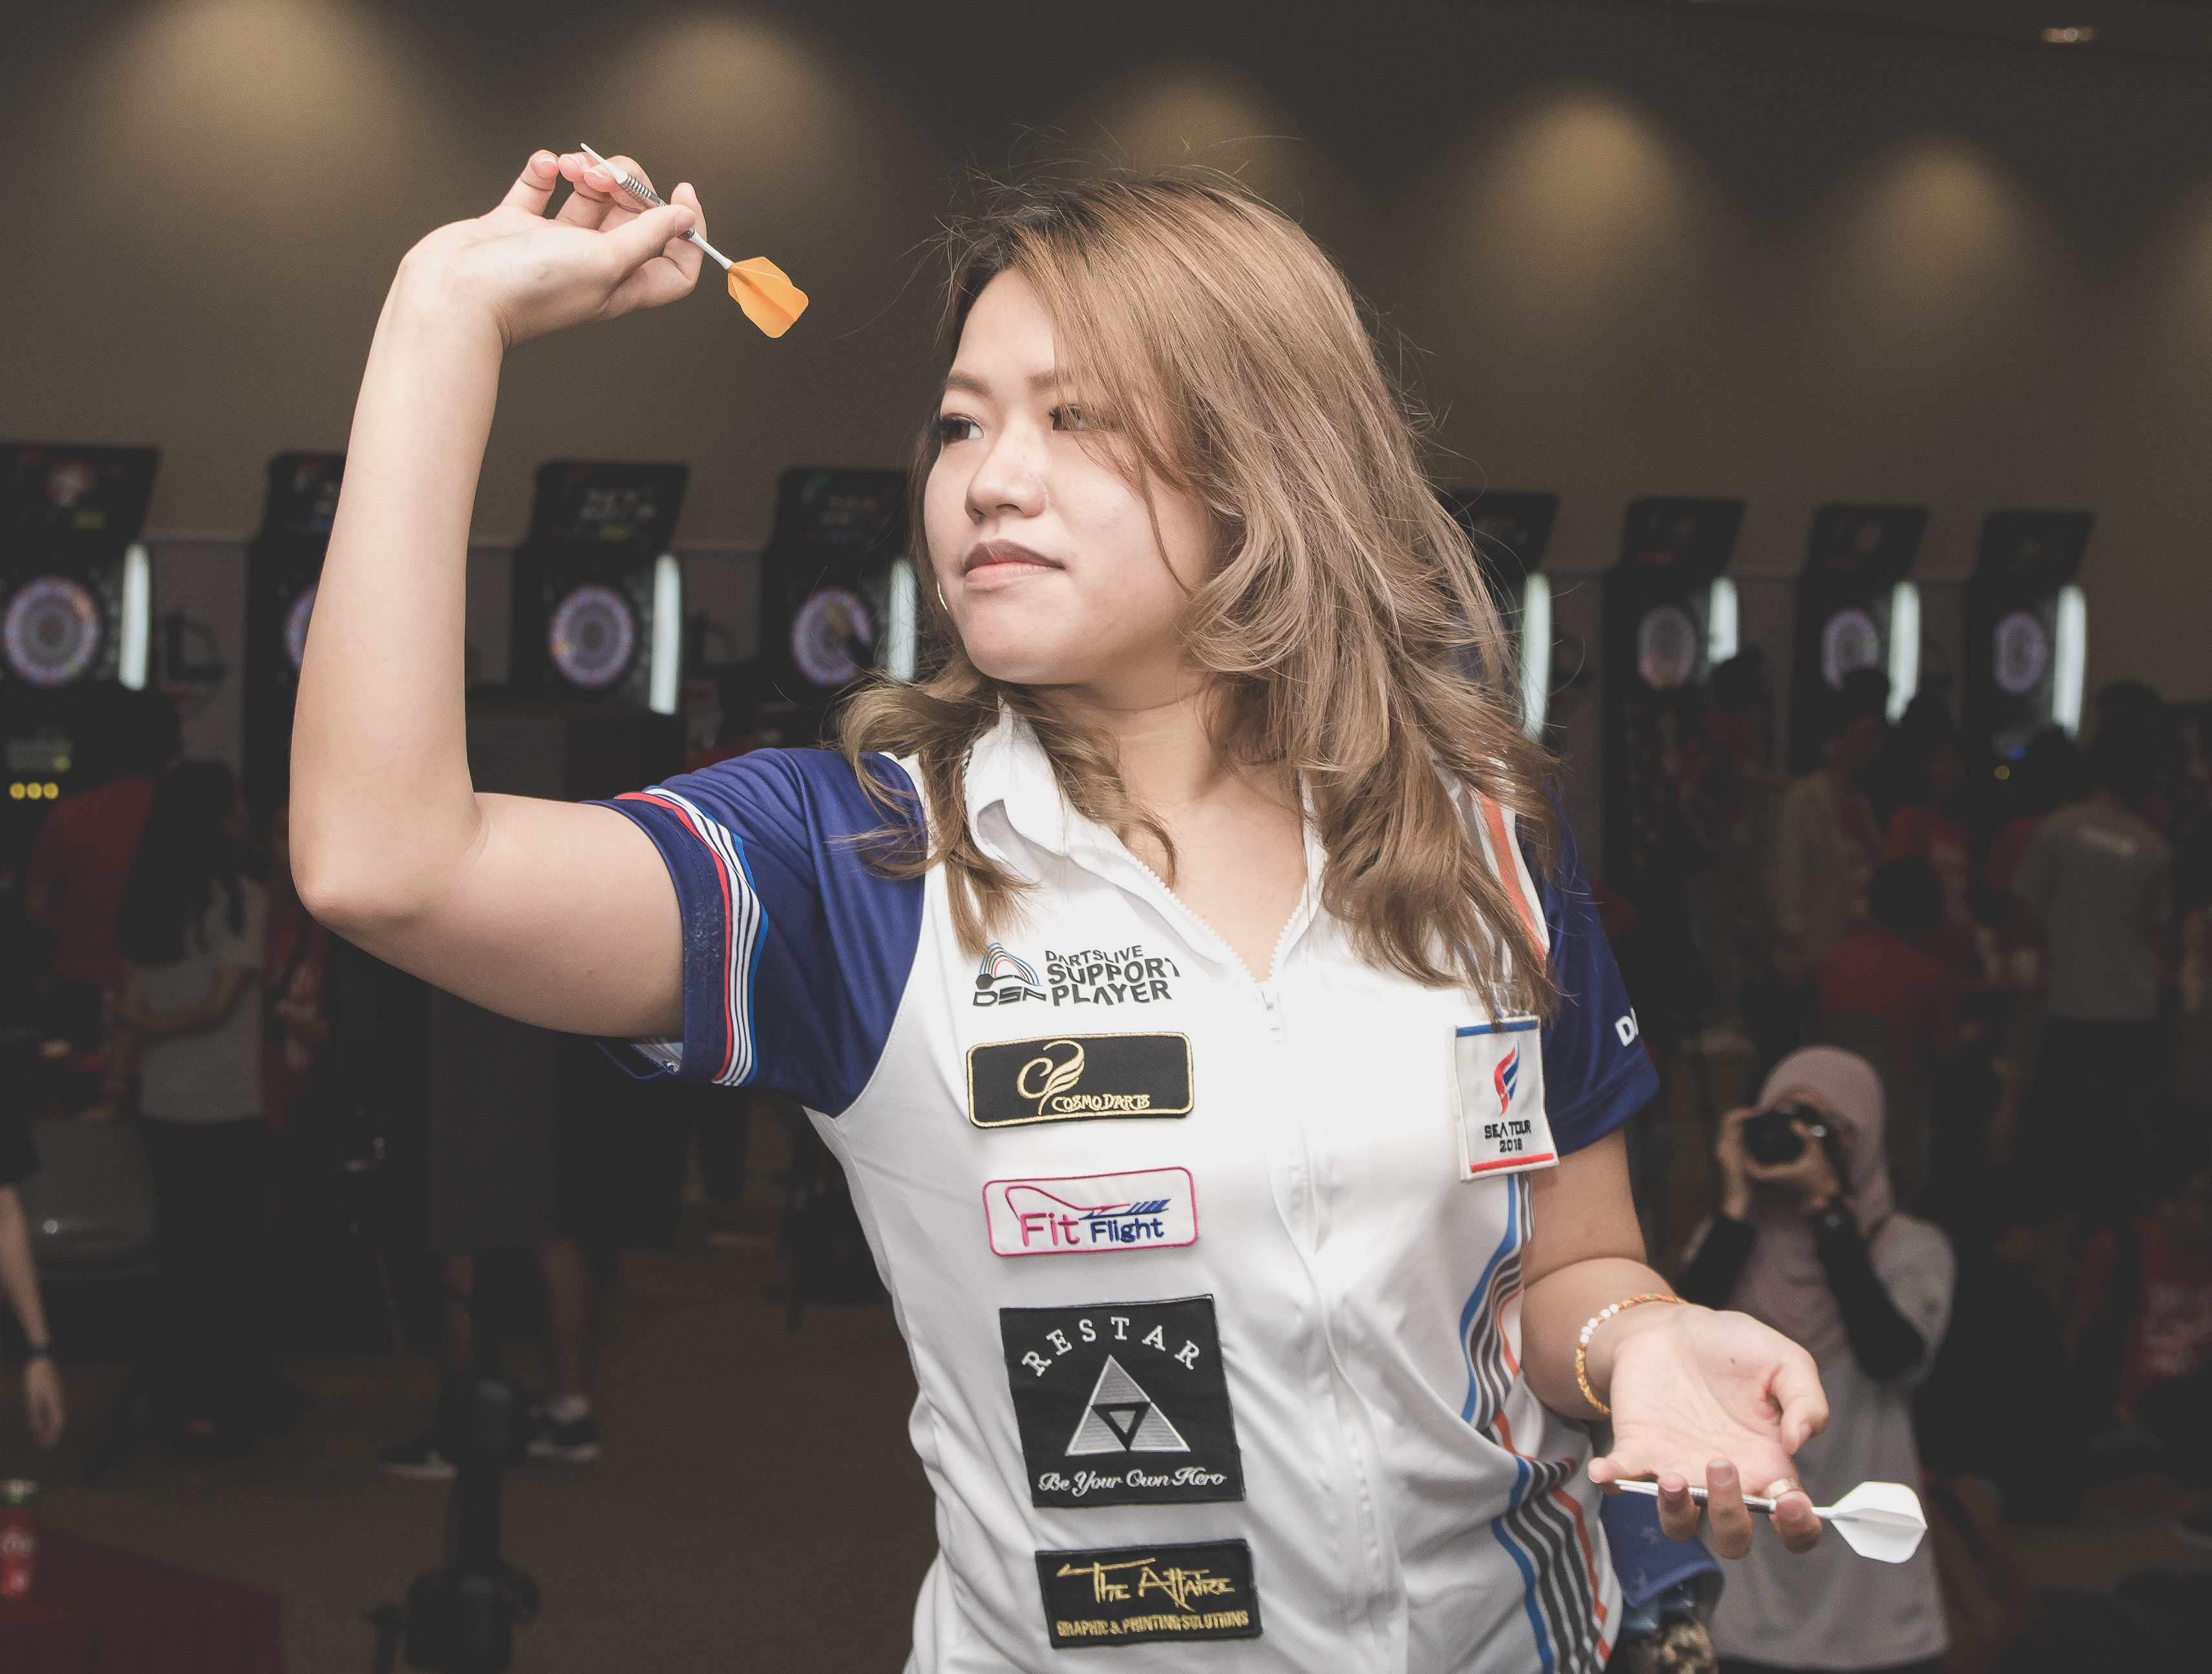 Youth Darts Festival Event